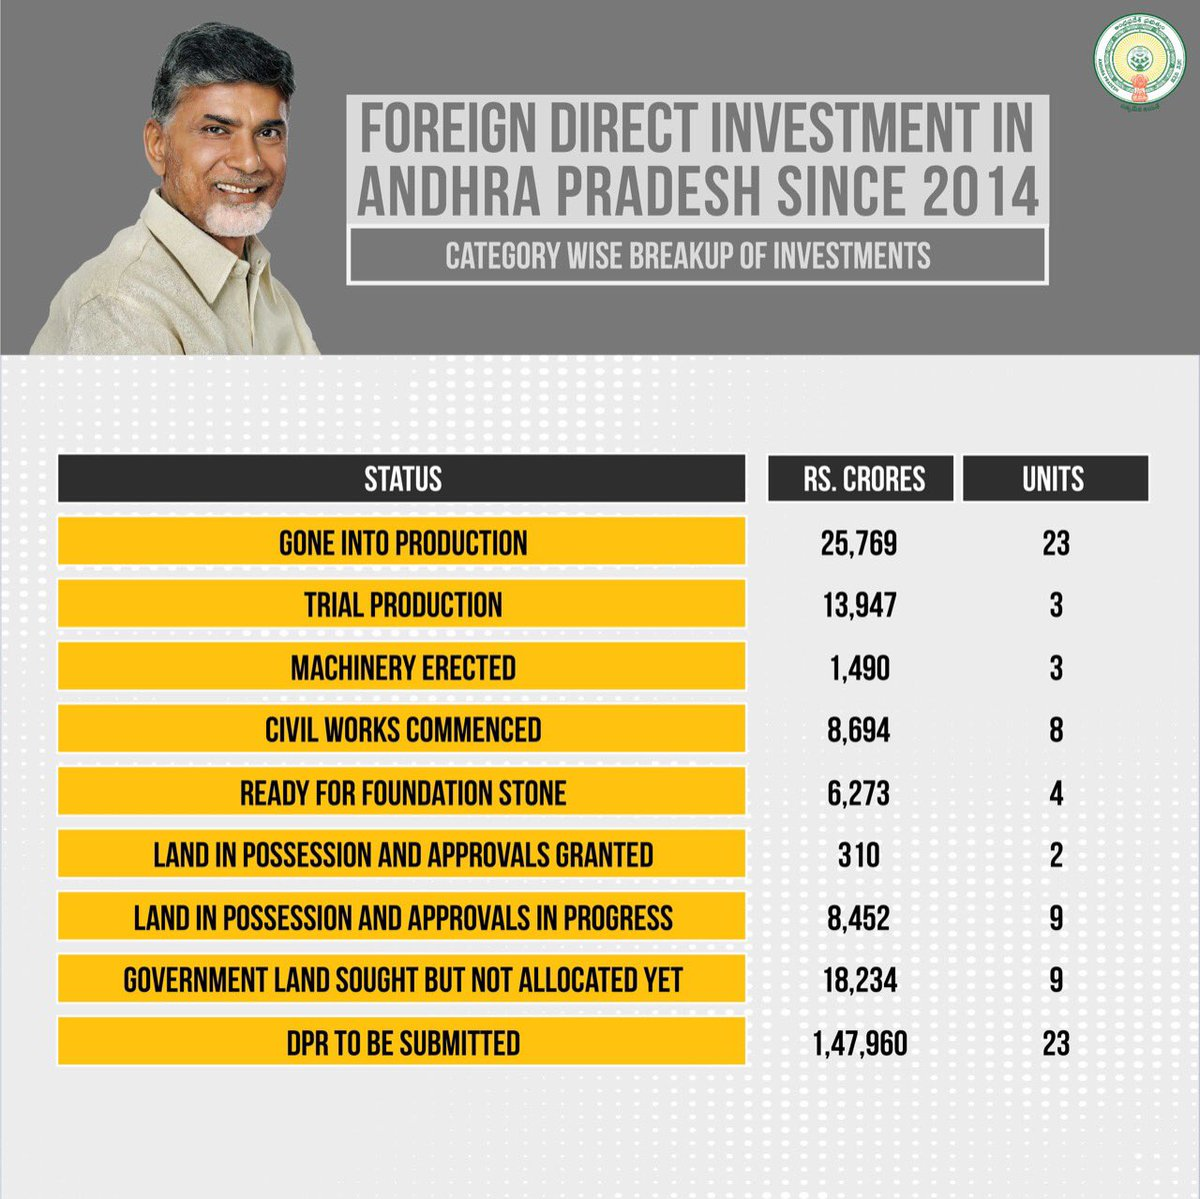 Foreign investment in andhra pradesh states 400 1 forex brokers